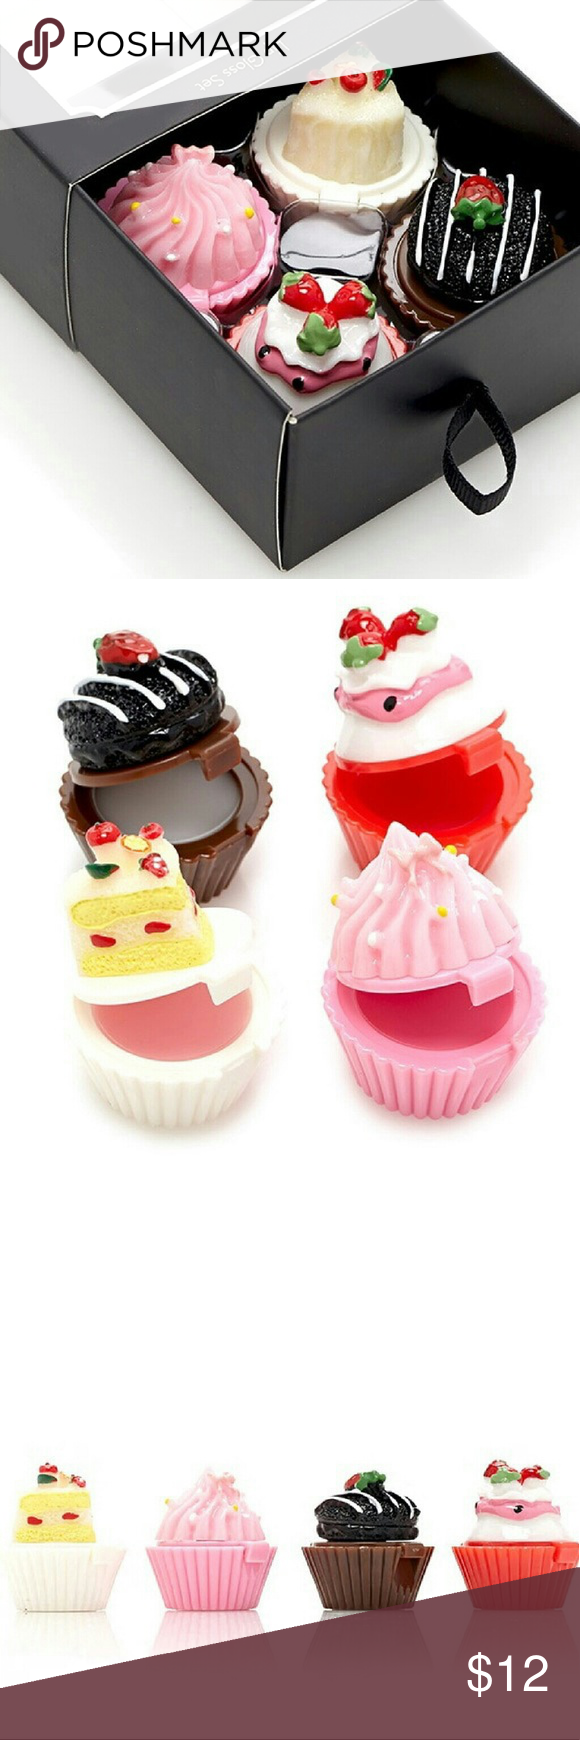 Adorable Cupcake Lip Gloss Set New with tags! This is an